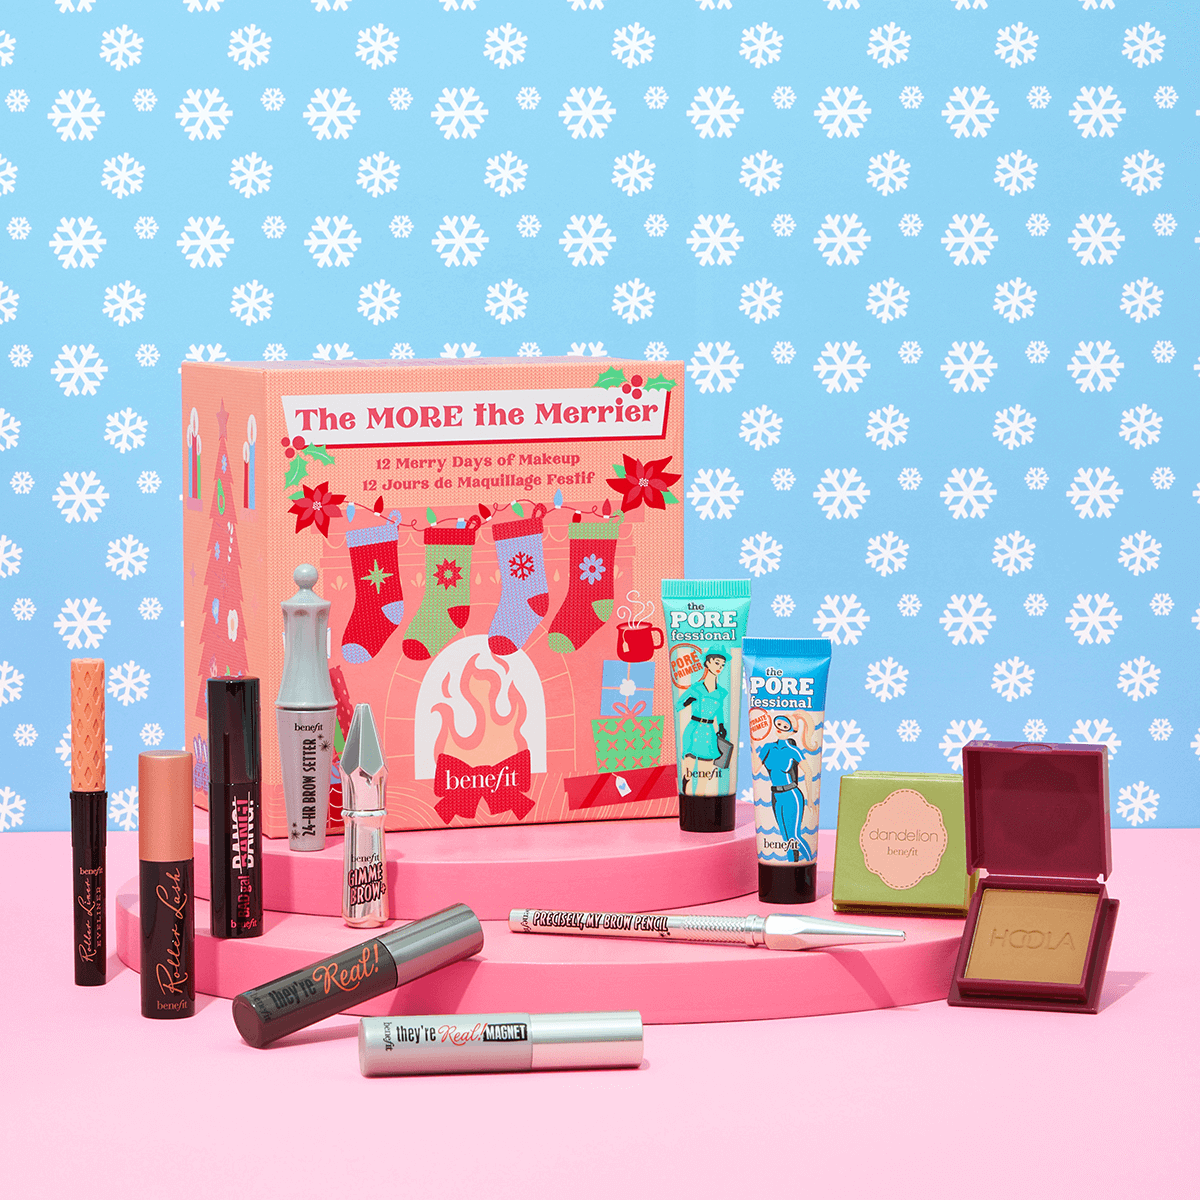 Benefit The More The Merrier Beauty Advent Calendar 2021 Contents Reveal!